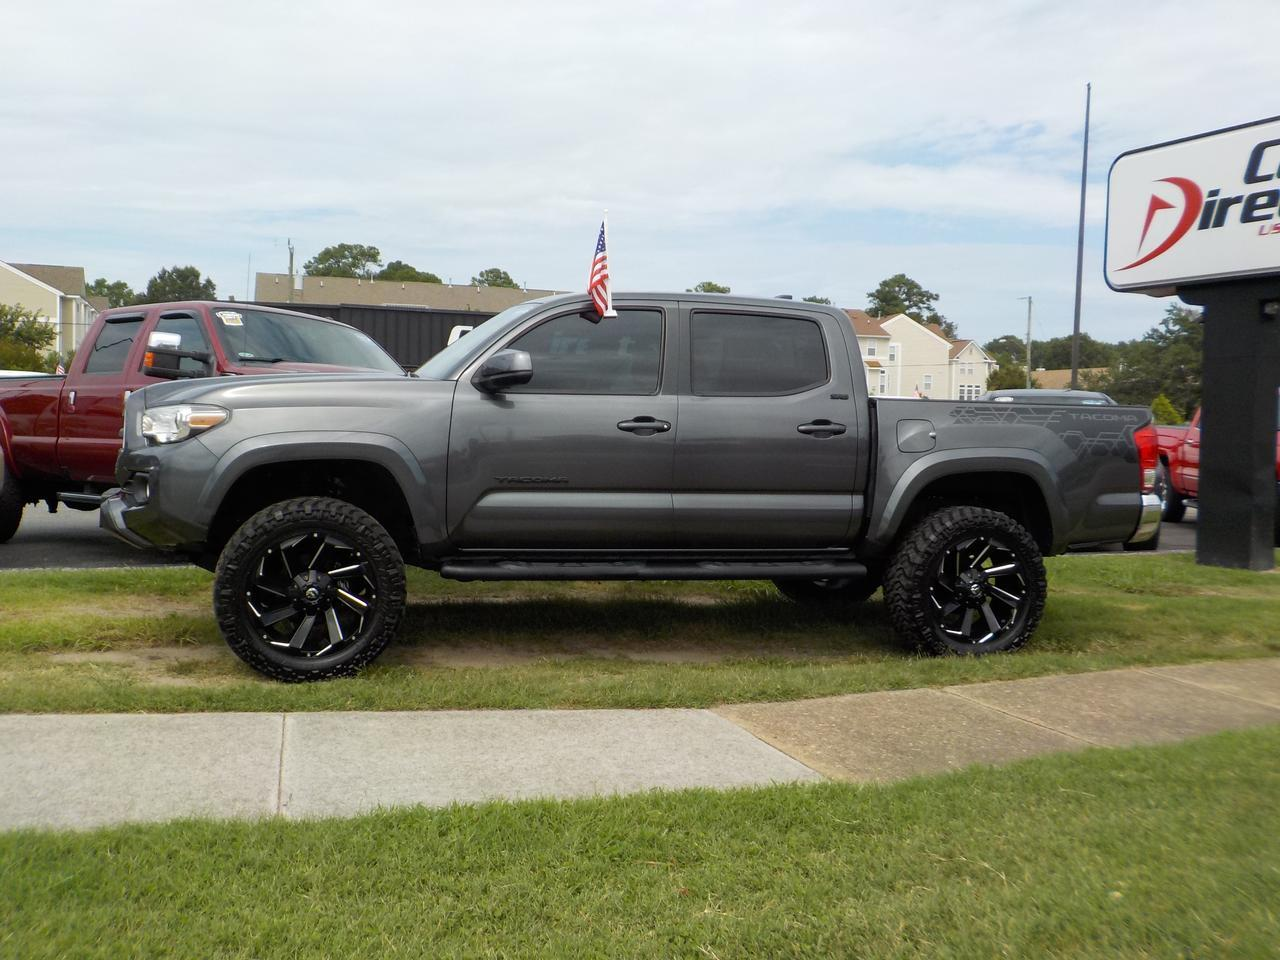 2017 TOYOTA TACOMA SR5 DOUBLE CAB 4X4, LIFTED, BACKUP CAM, SIRIUS RADIO, AUX/USB PORT, BLUETOOTH, ONLY 8K MILES... NEW! Virginia Beach VA